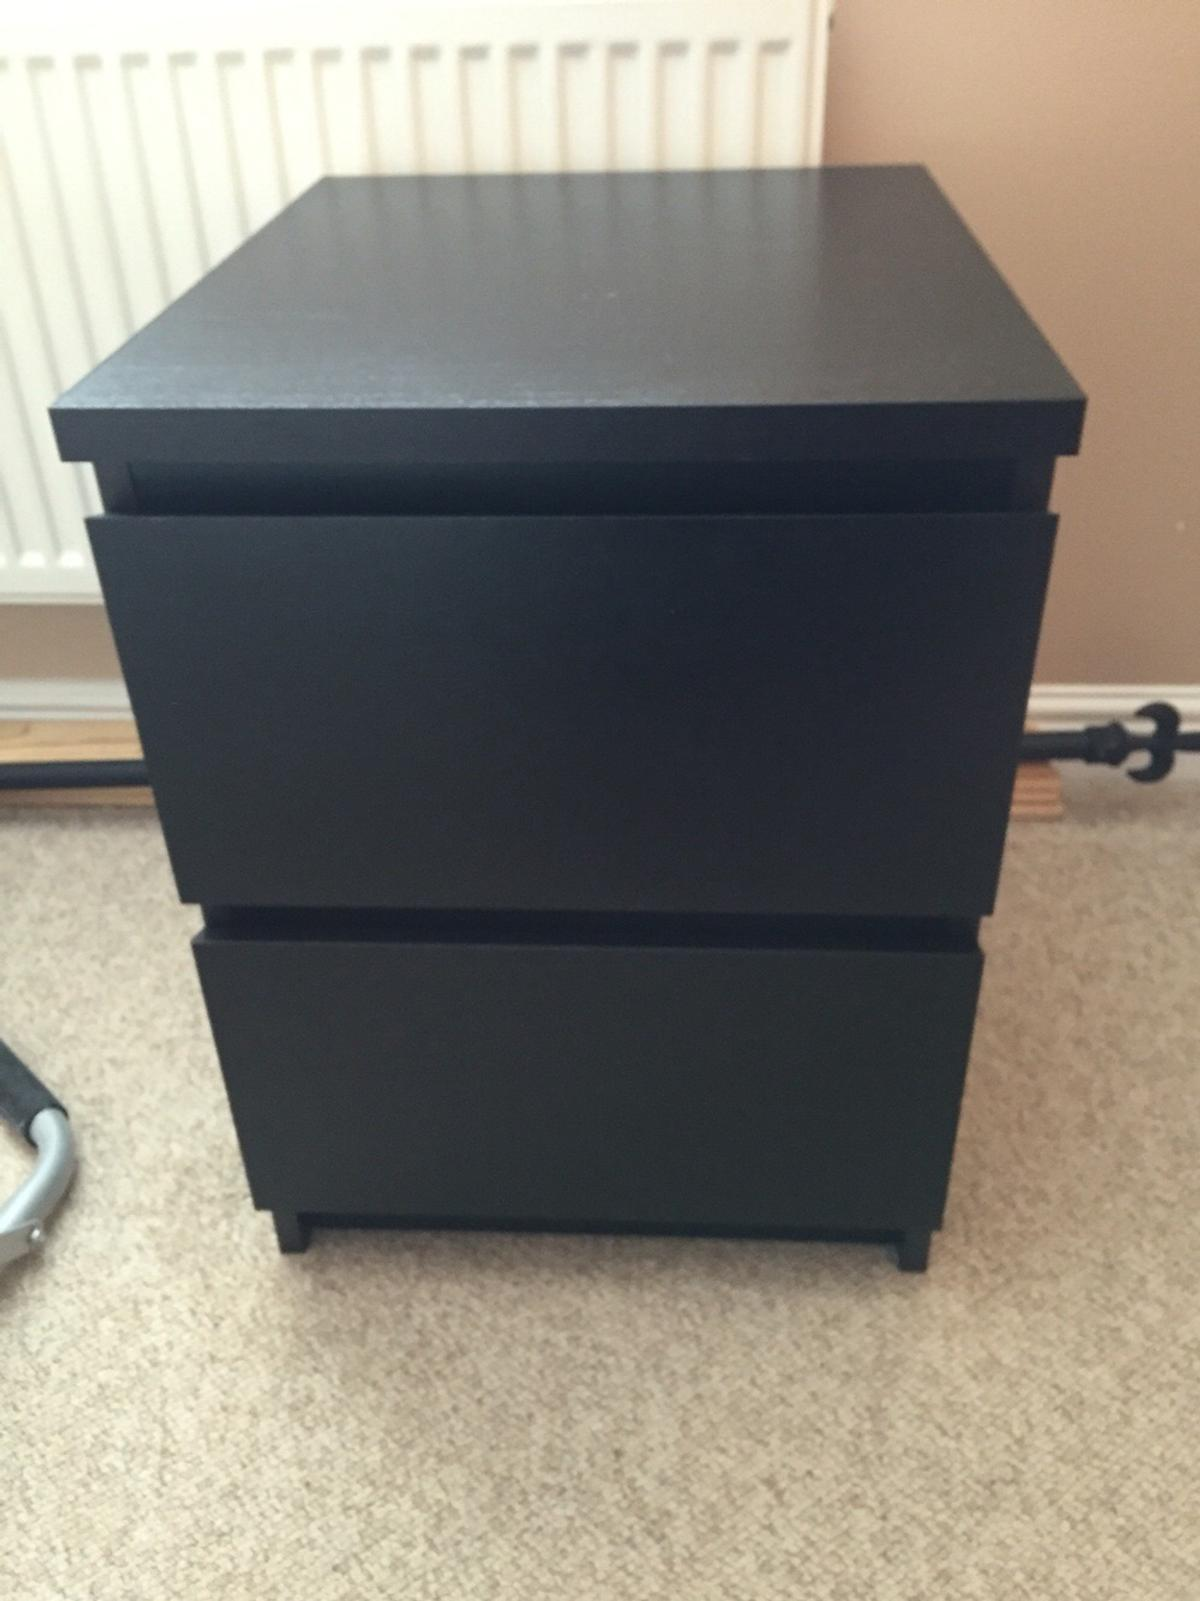 Marvelous Black Ikea Malm Bedside Table Download Free Architecture Designs Crovemadebymaigaardcom